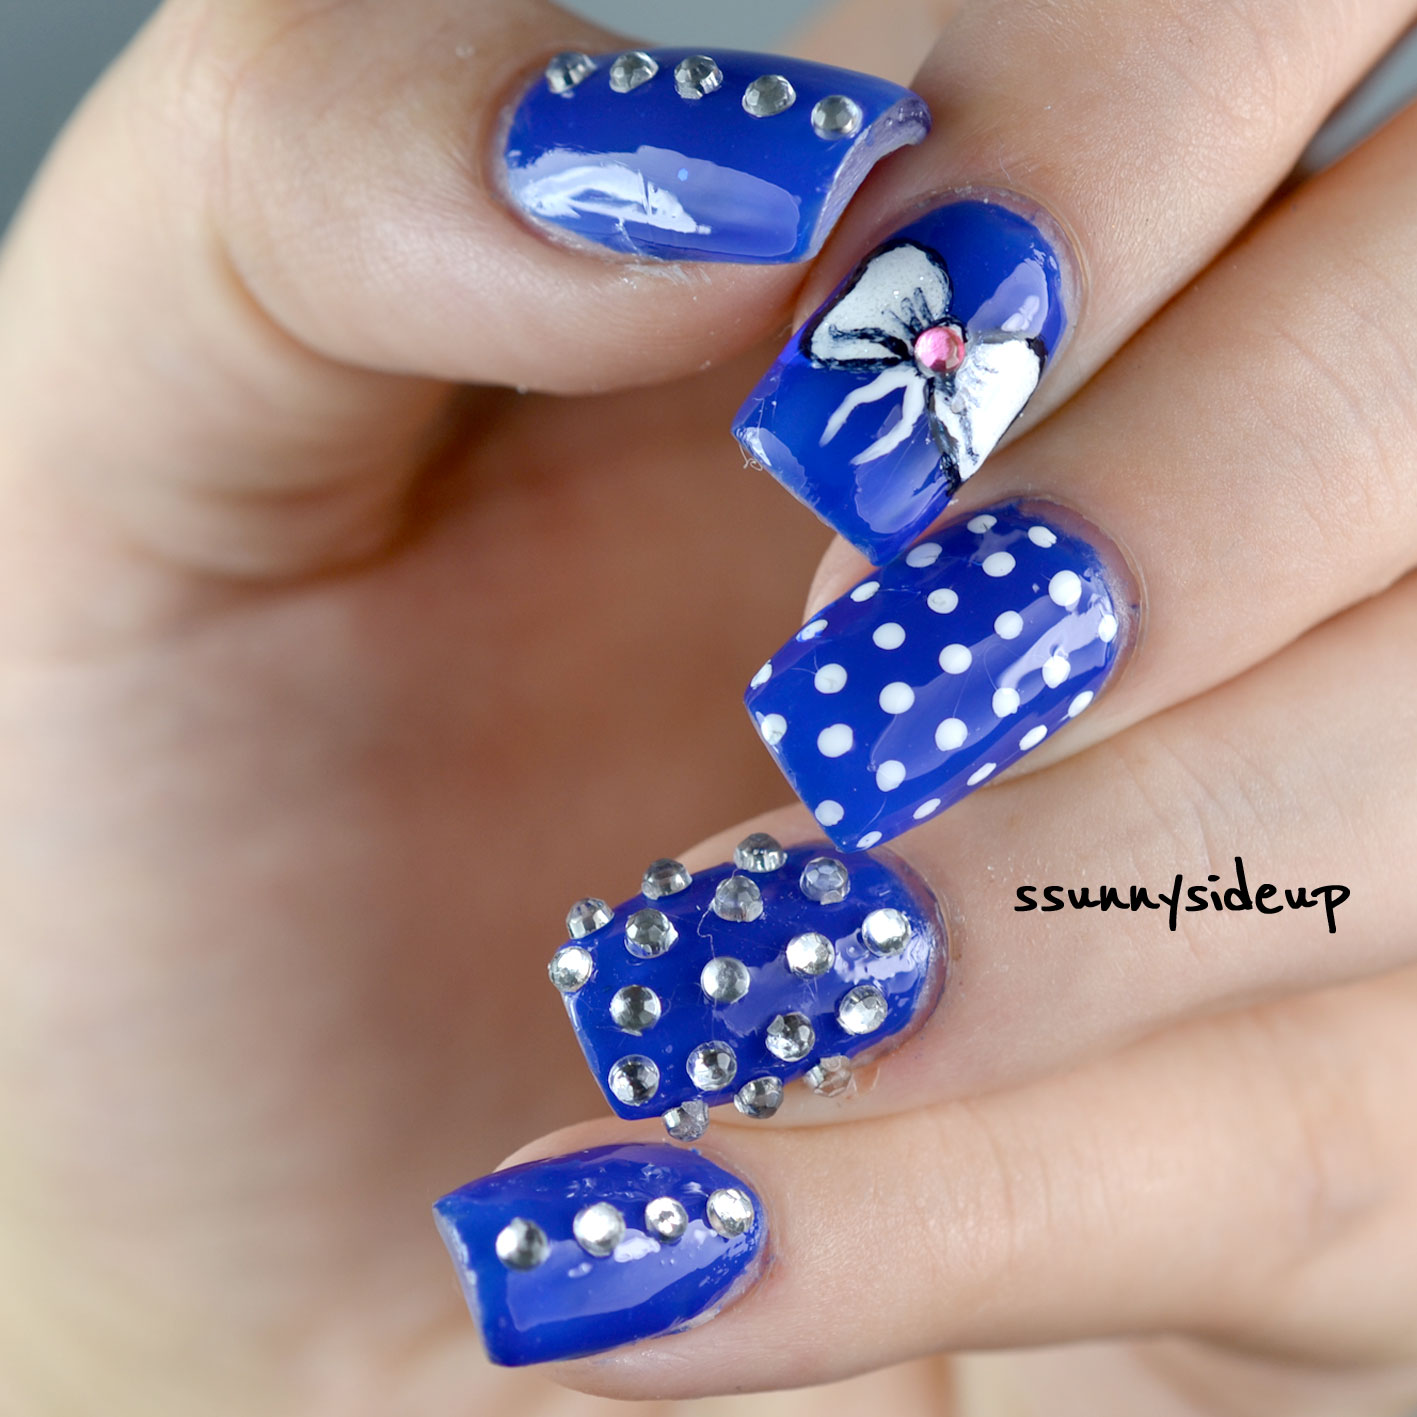 ssunnysideup: Bow and jewels nails